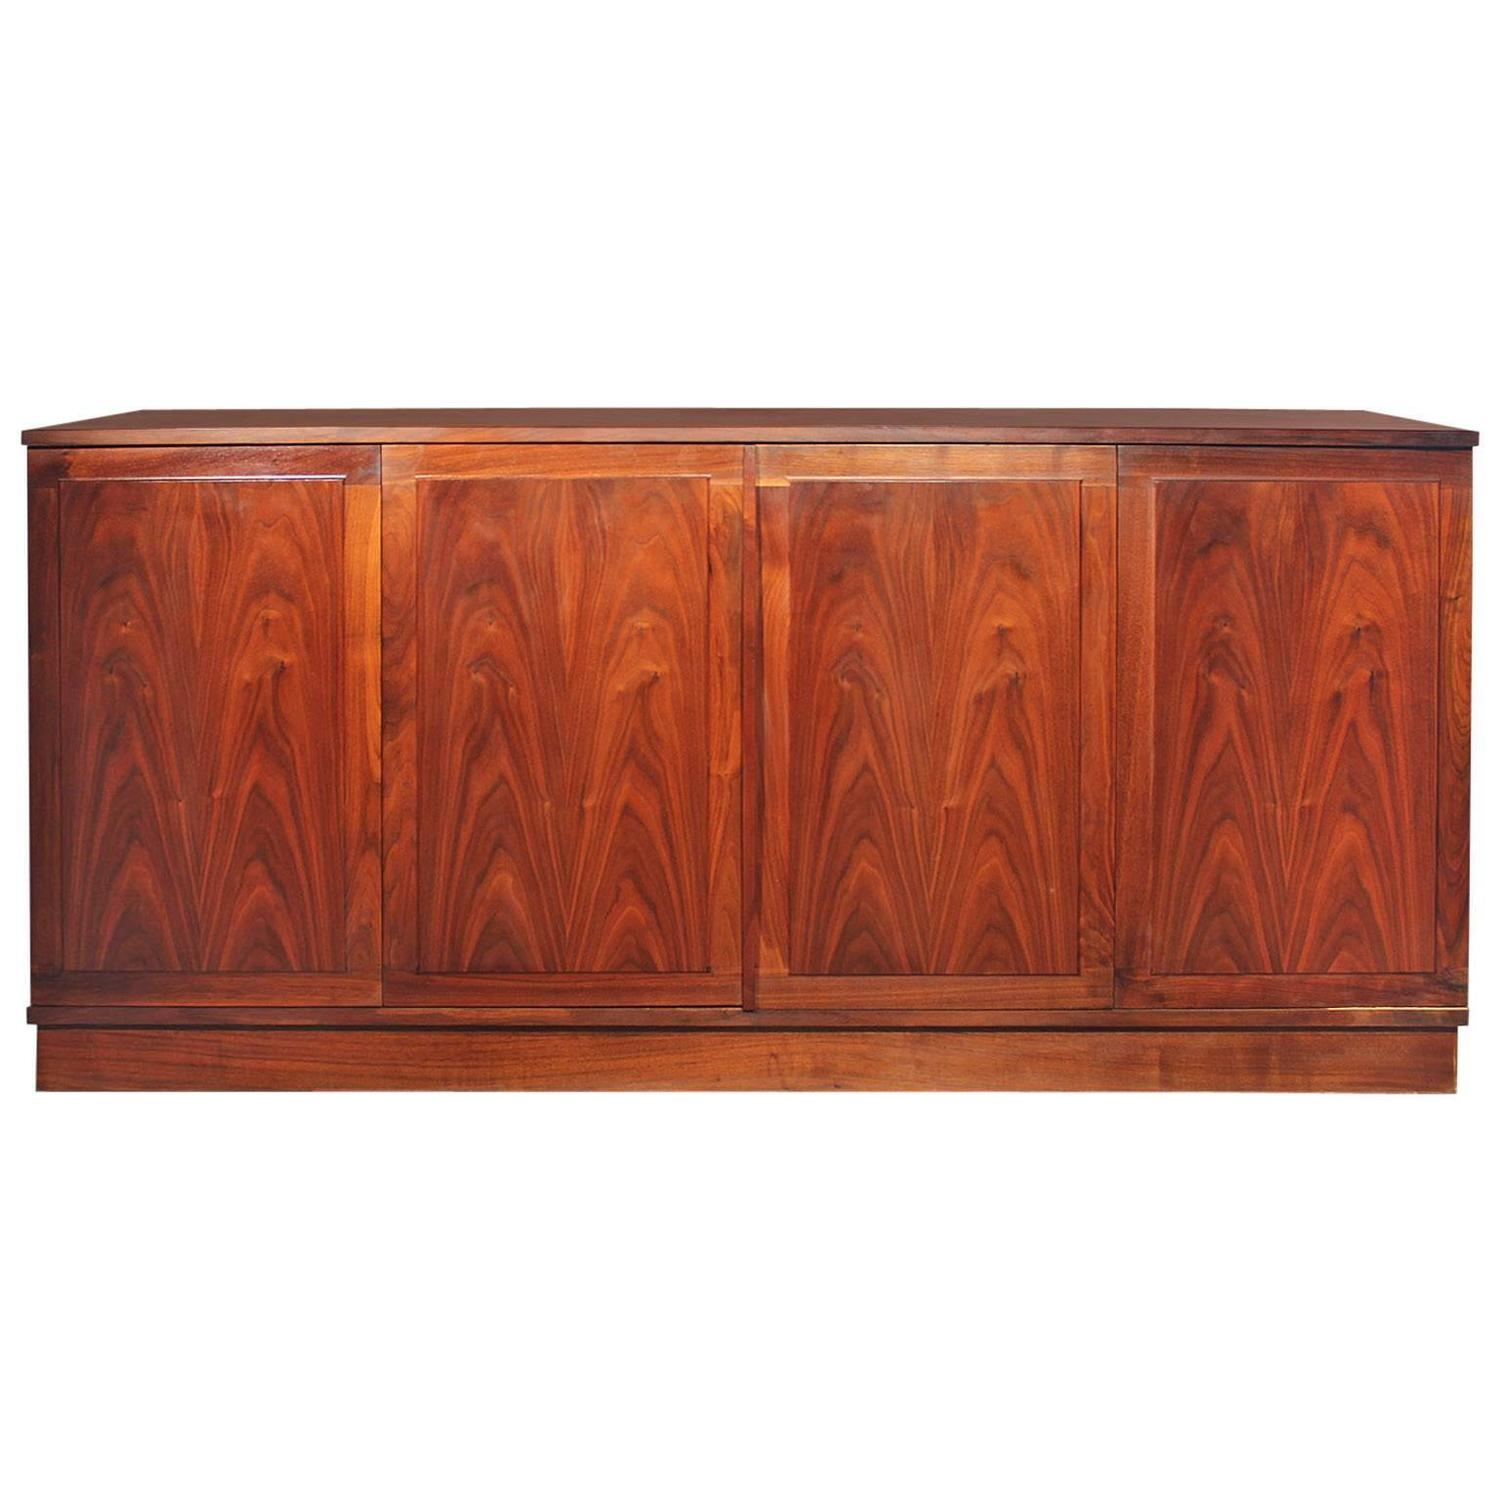 Etonnant Honduran Rosewood Bookmatched Cabinet By Jack Cartwright For Founders  Furniture